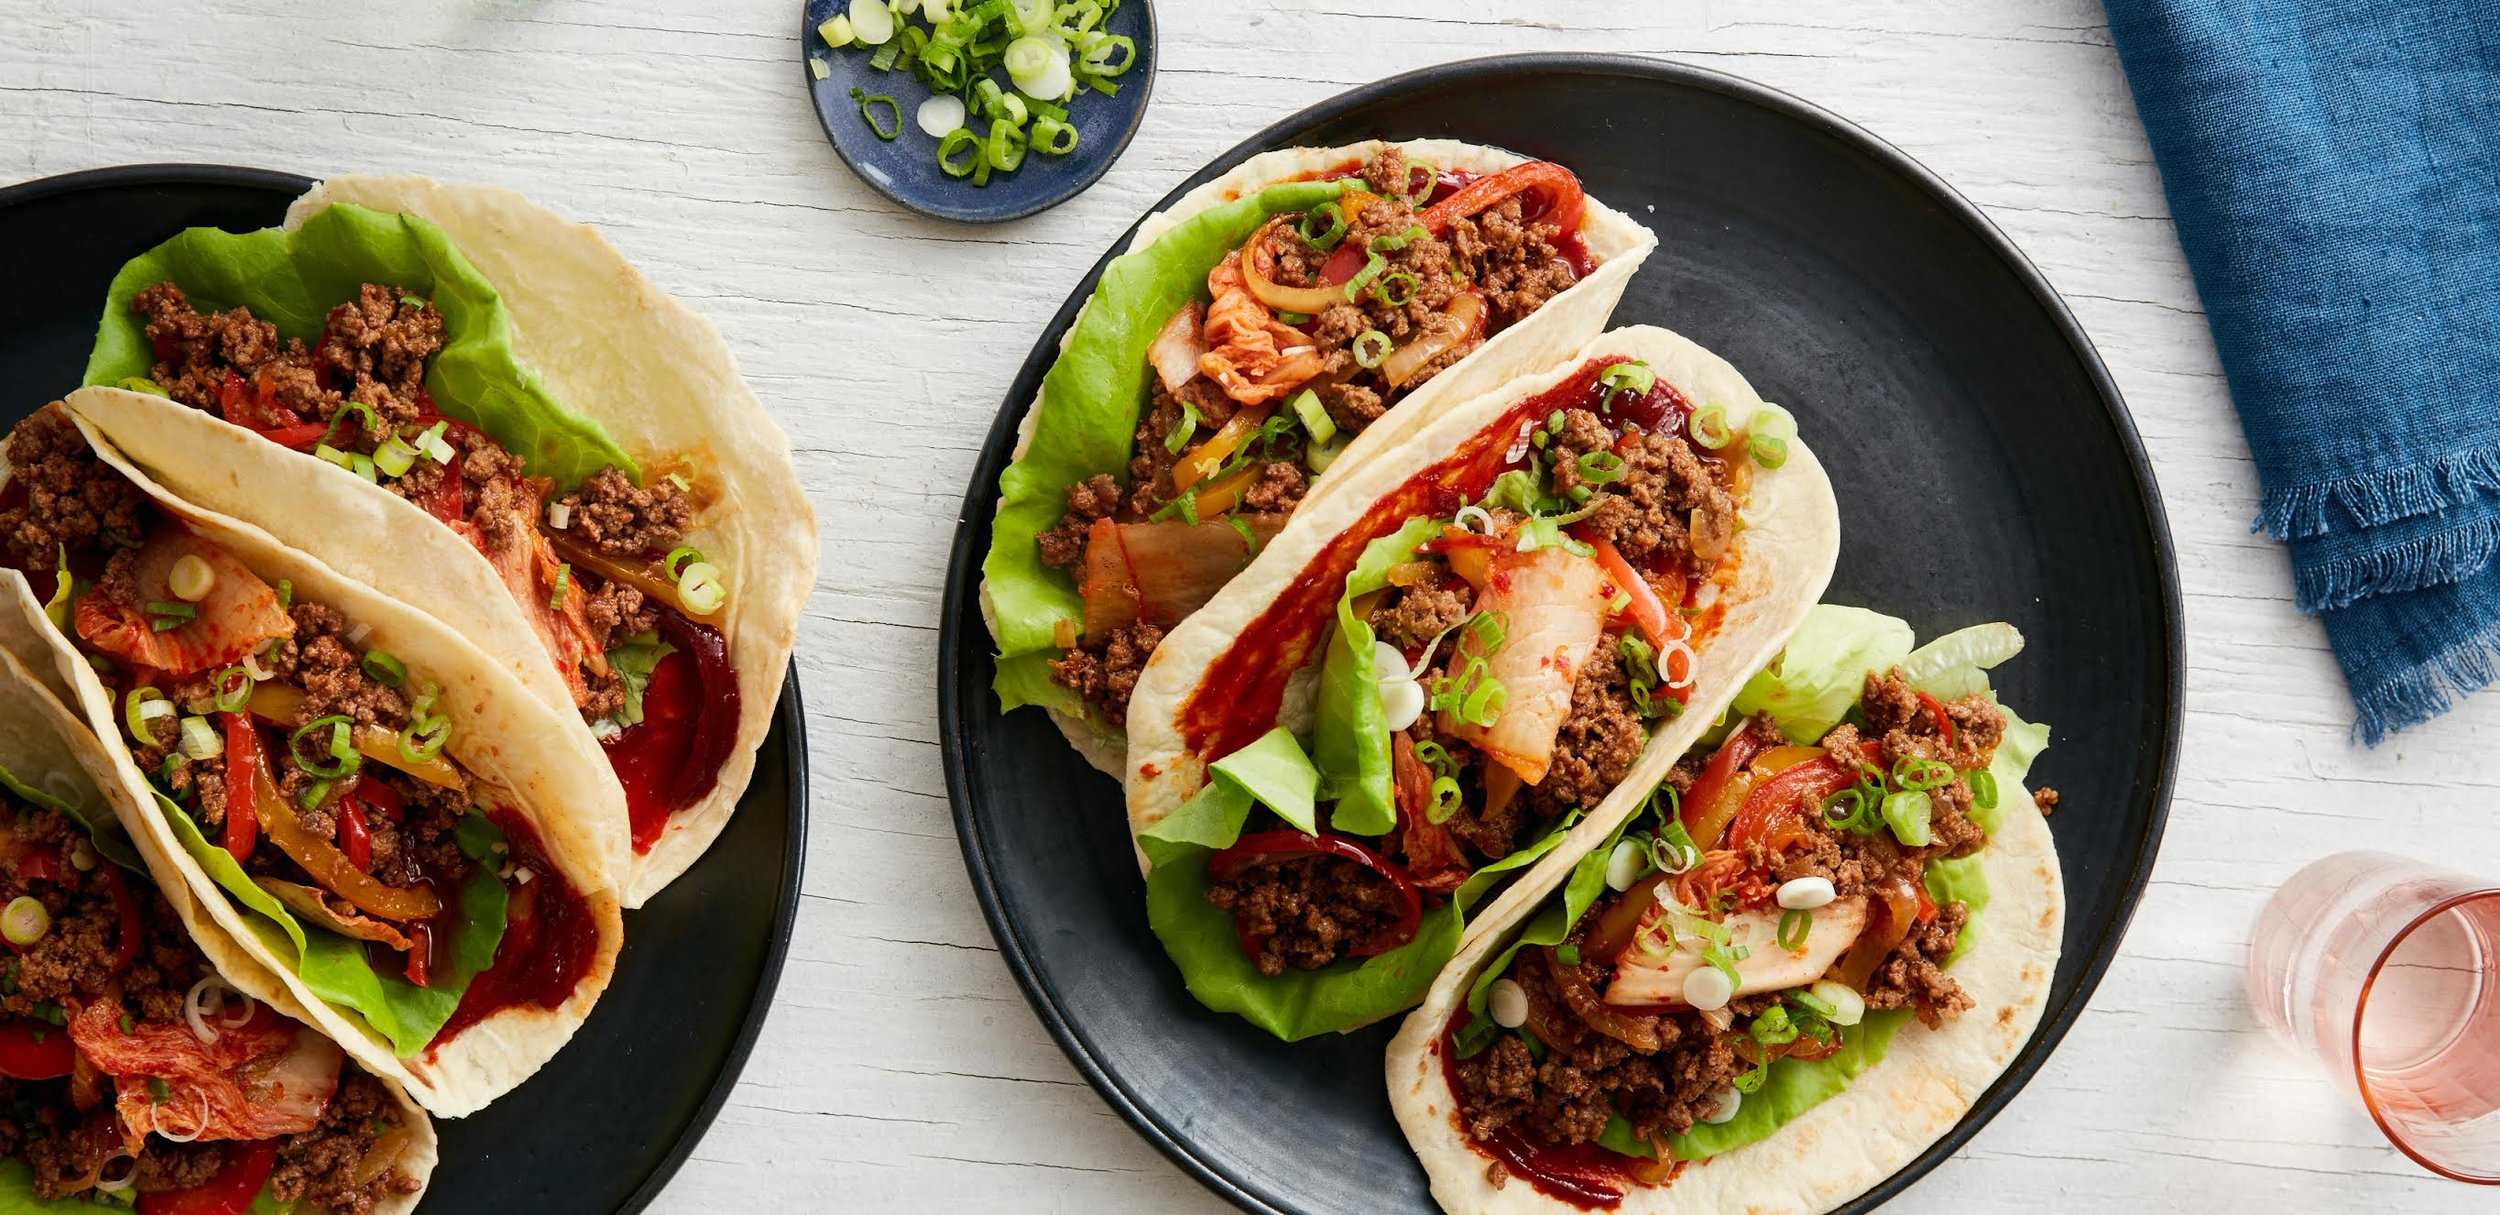 Plated - Meal Delivery Service, Korean Tacos